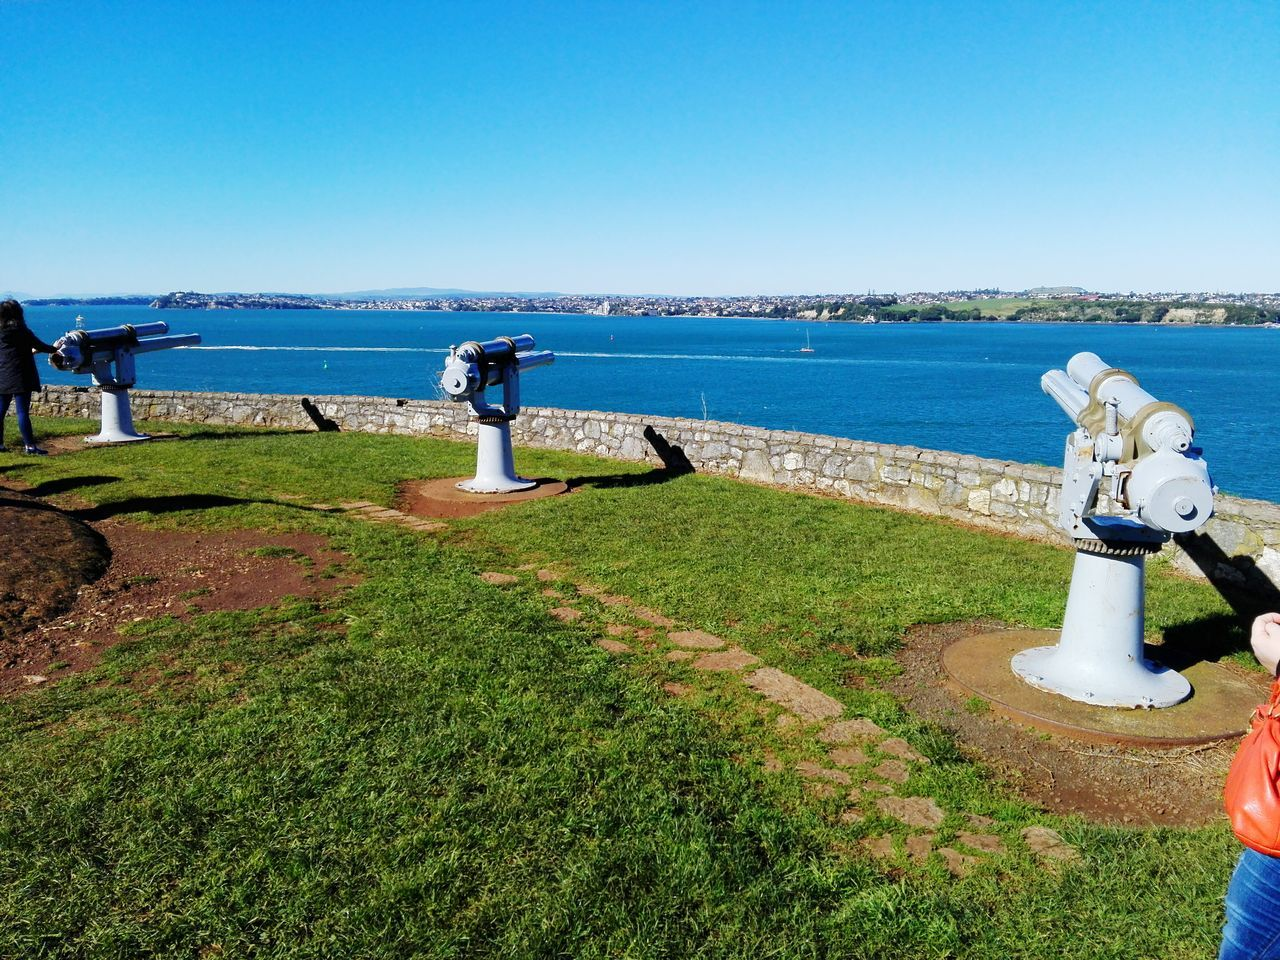 water, sea, blue, day, clear sky, nature, horizon over water, beauty in nature, scenics, outdoors, grass, tranquil scene, no people, statue, sunlight, sky